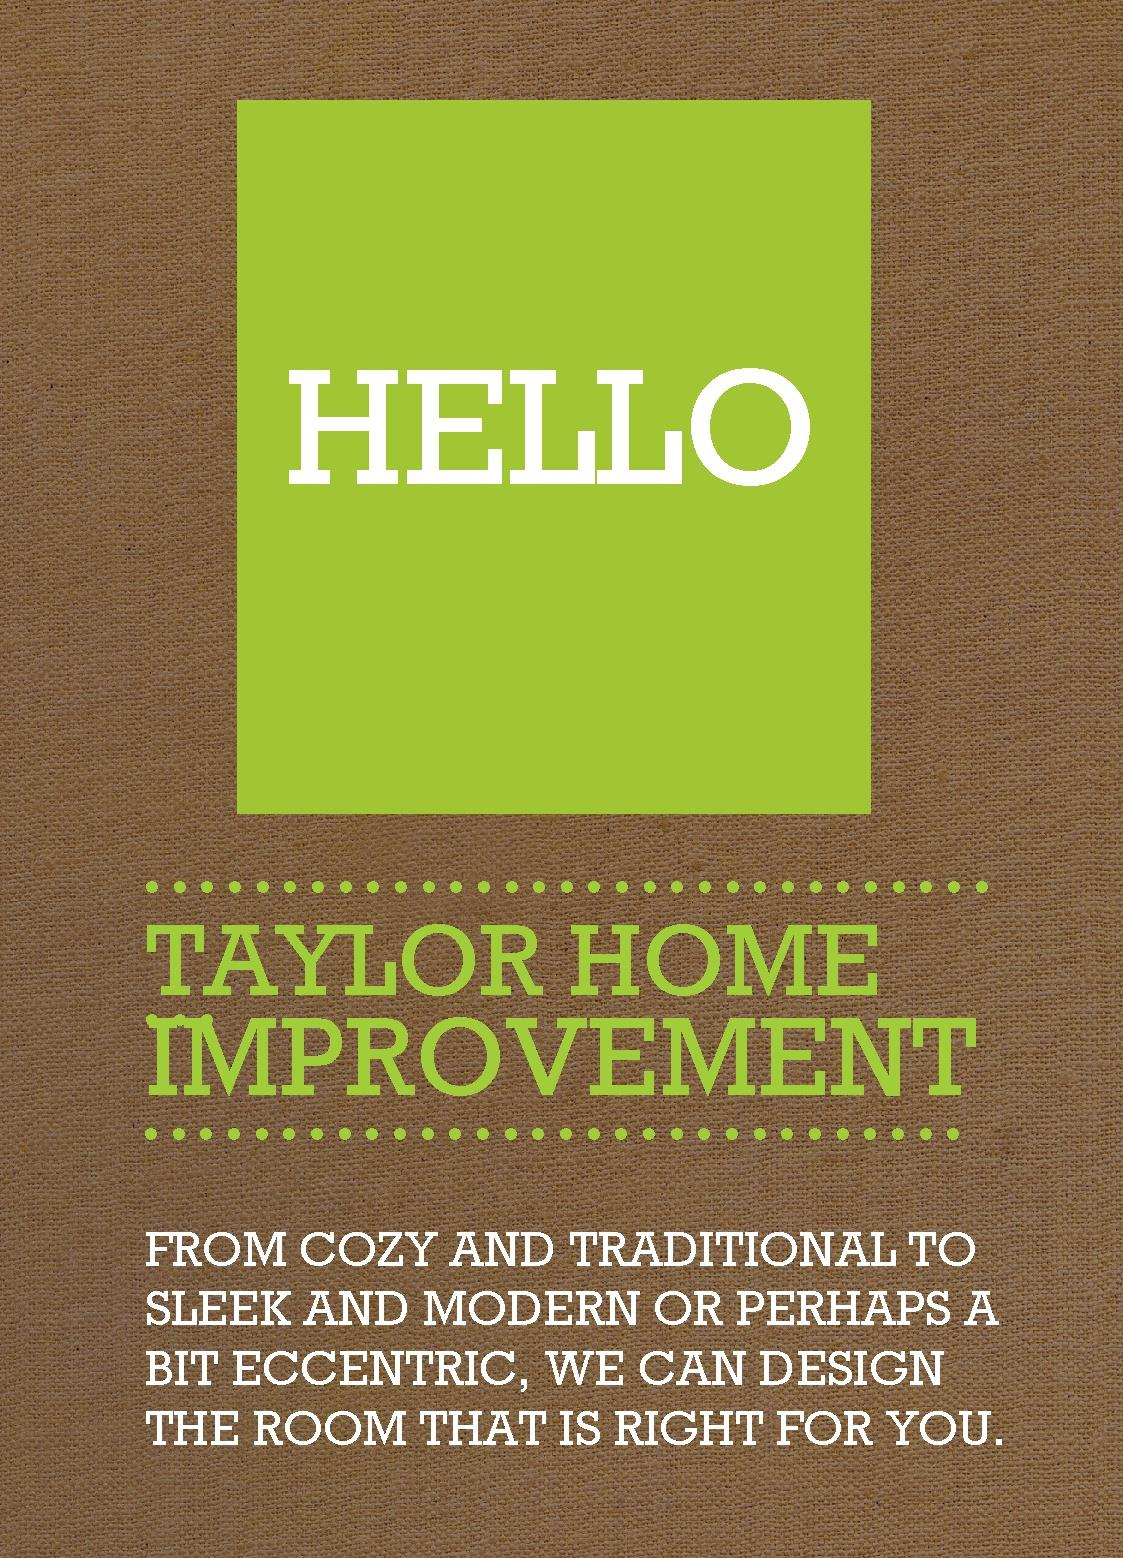 hello flyers leaflets design template